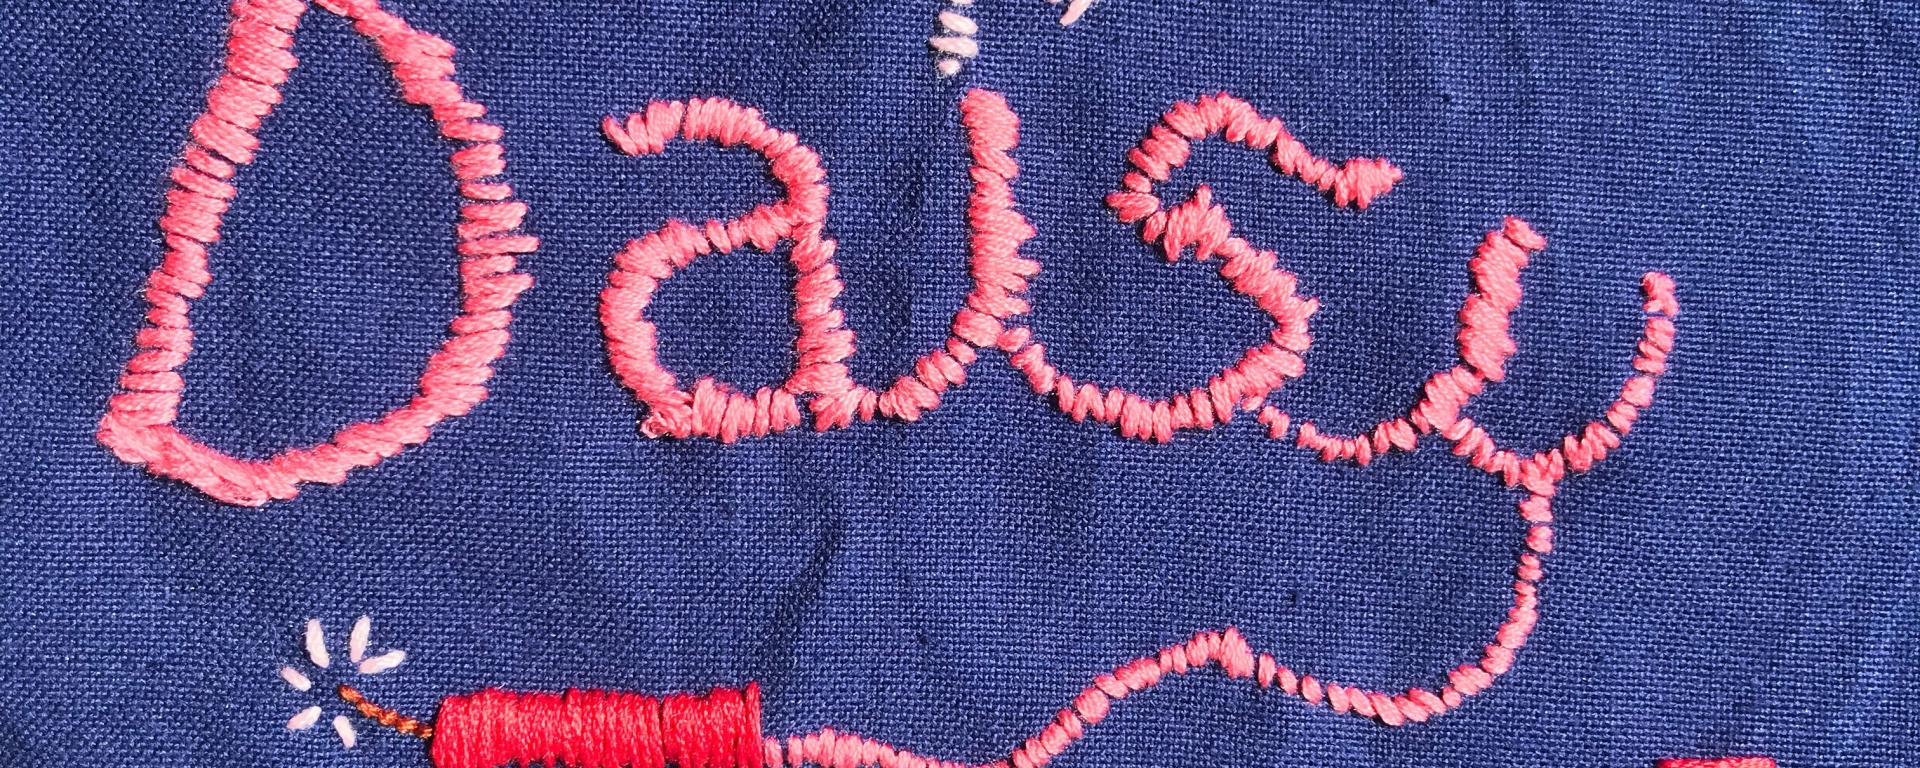 Pink embroidery on blue fabric with the name DAISY